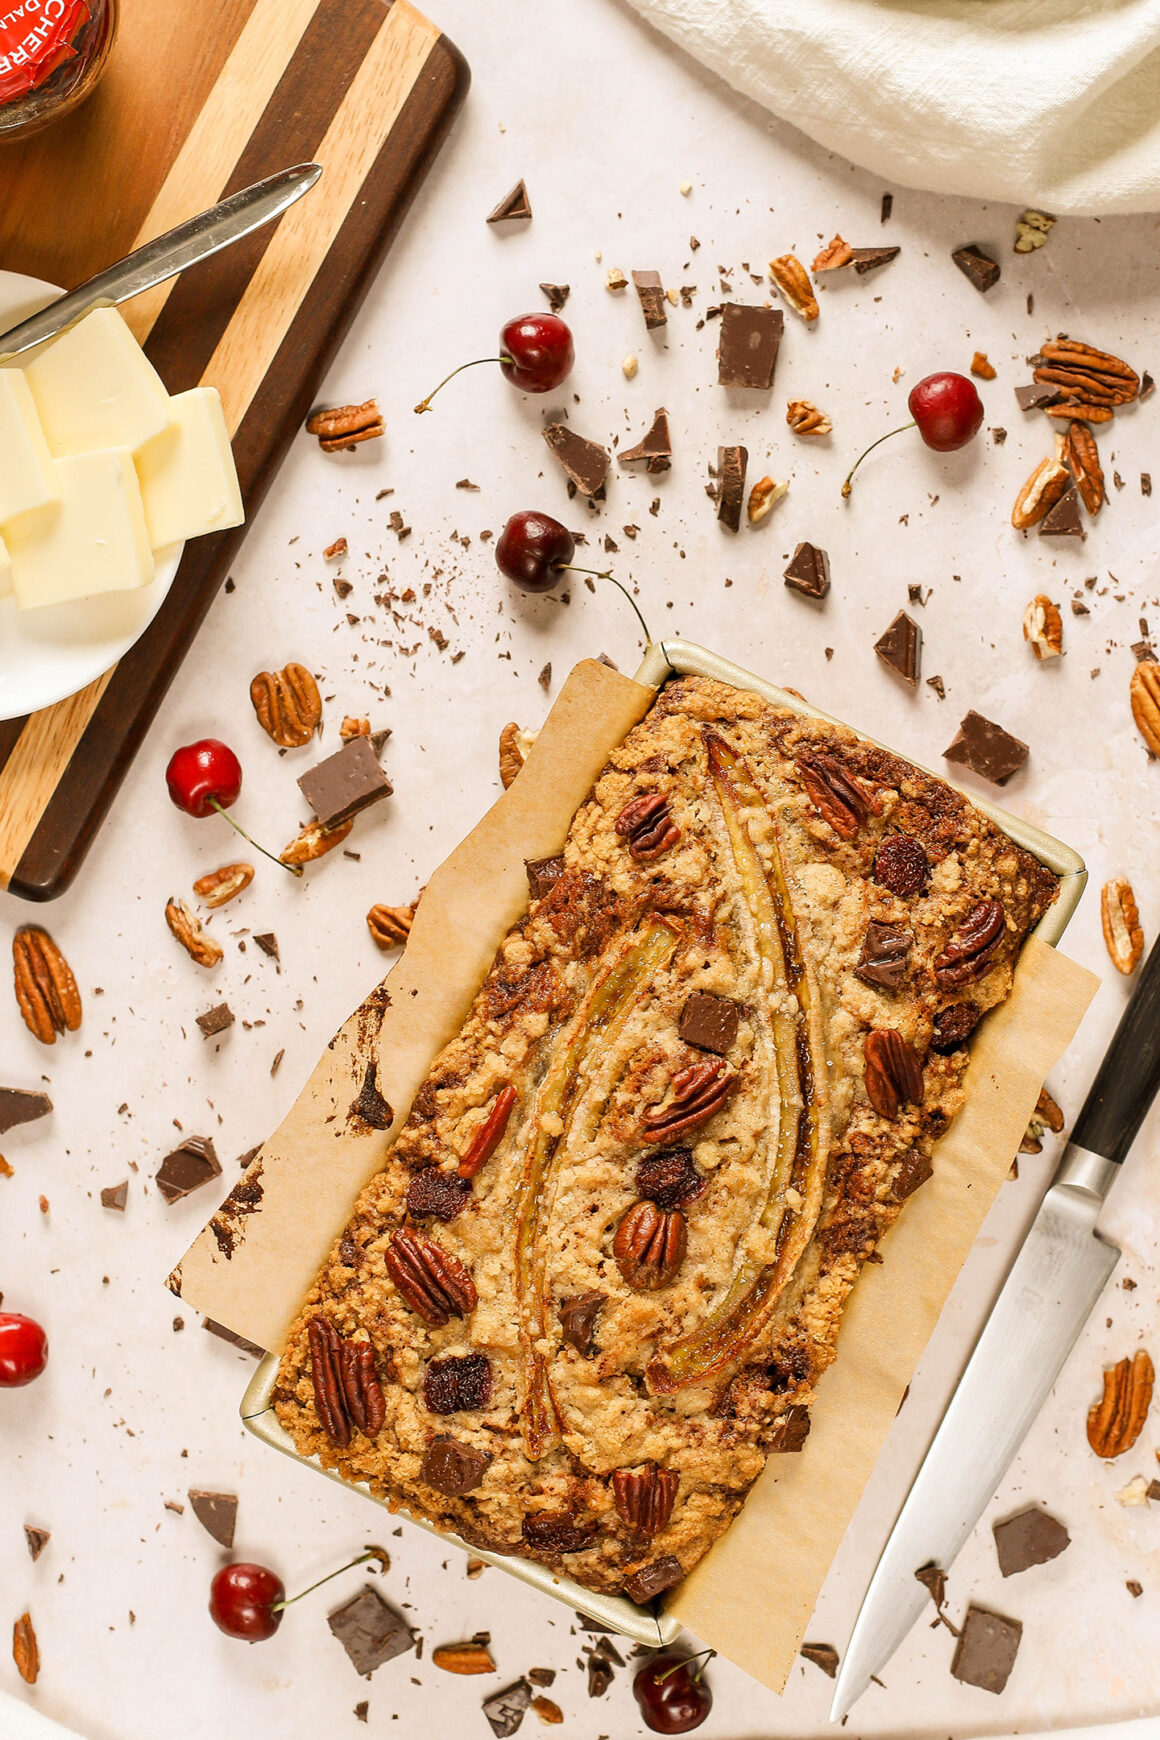 banana bread loaf with cherries, chocolate and pecans